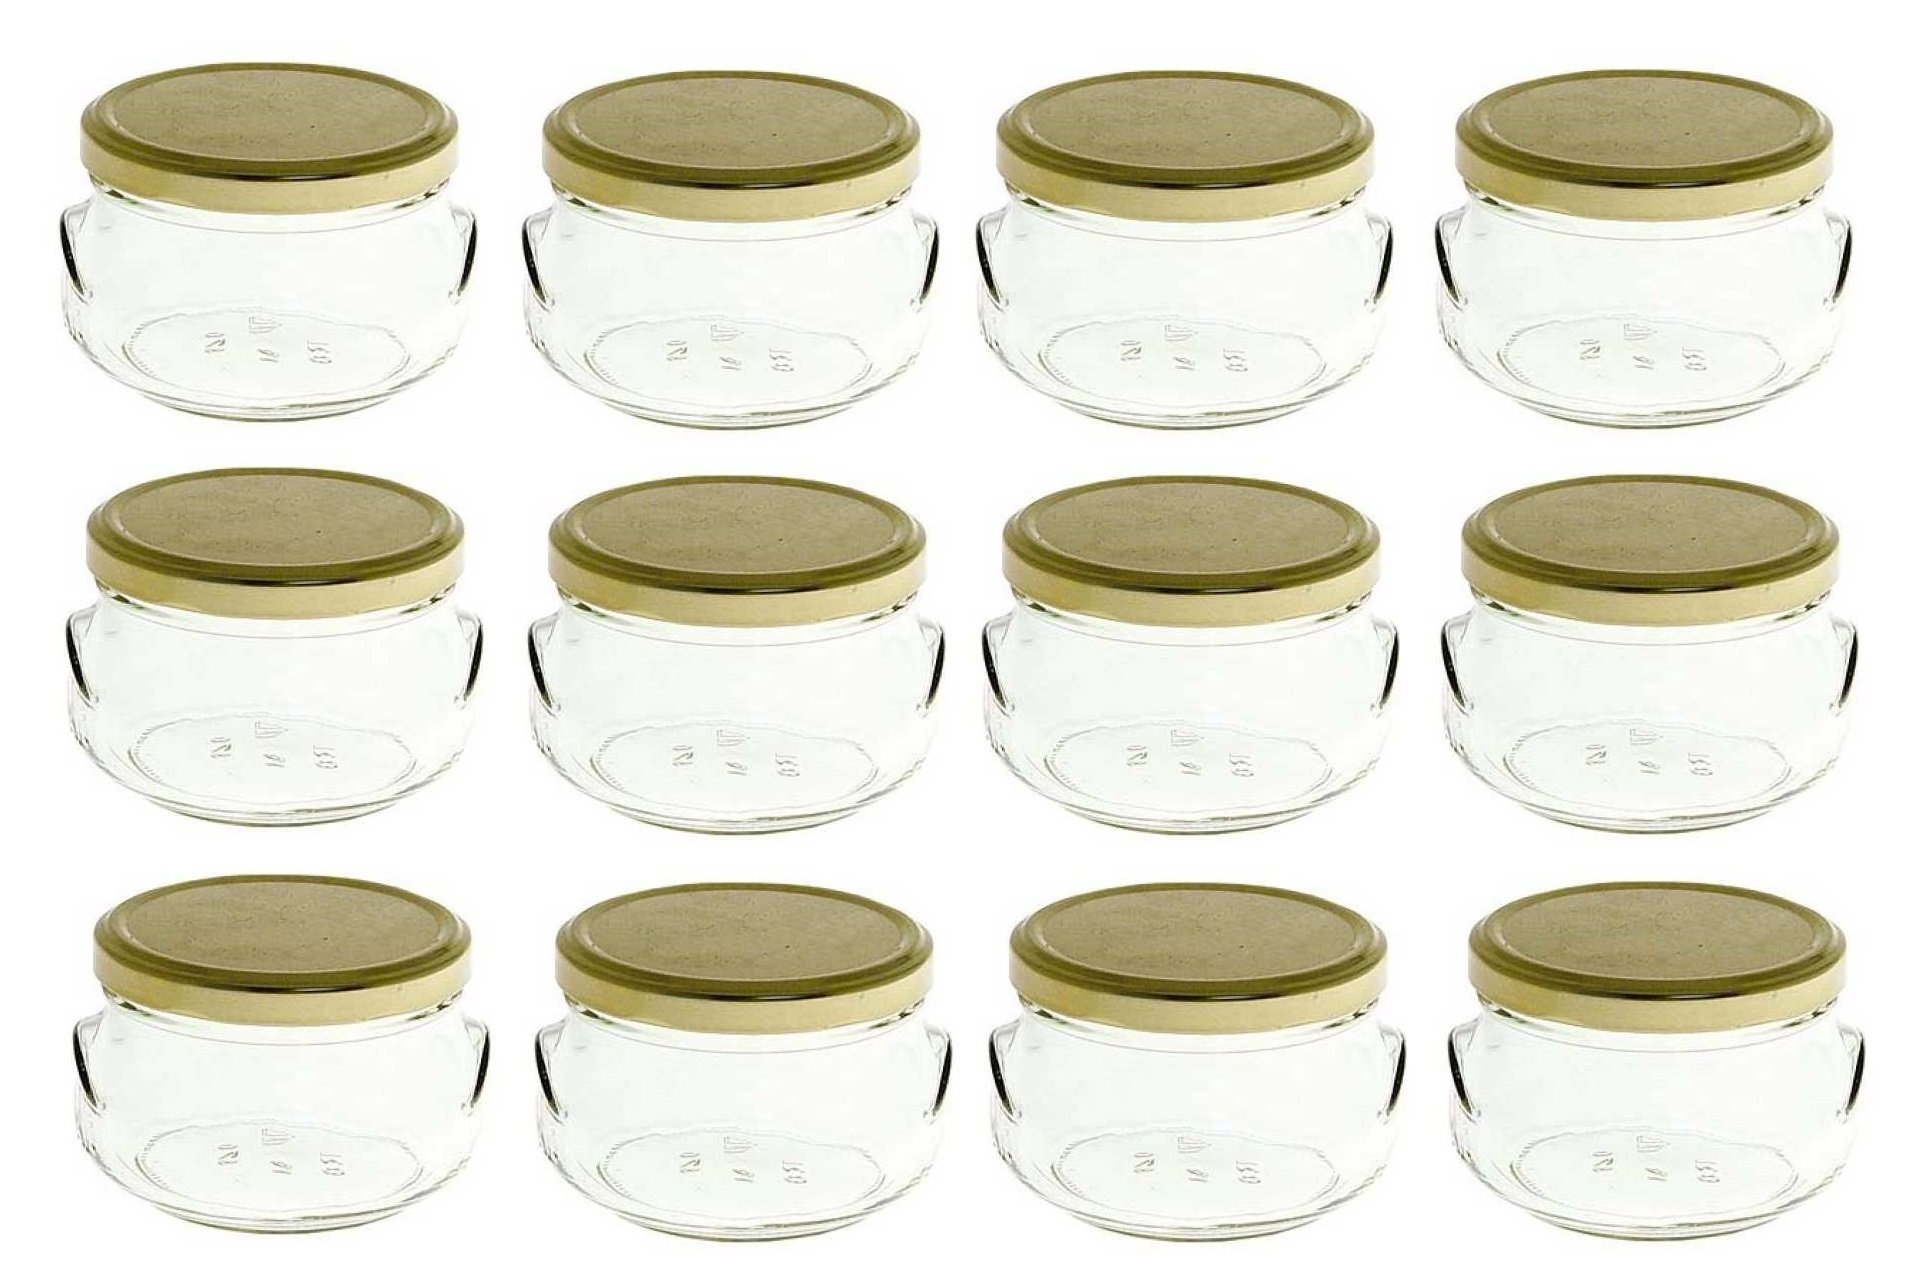 Nakpunar 12 pcs, 8 oz Tureen Glass Jars with Gold Lids (250 ml)